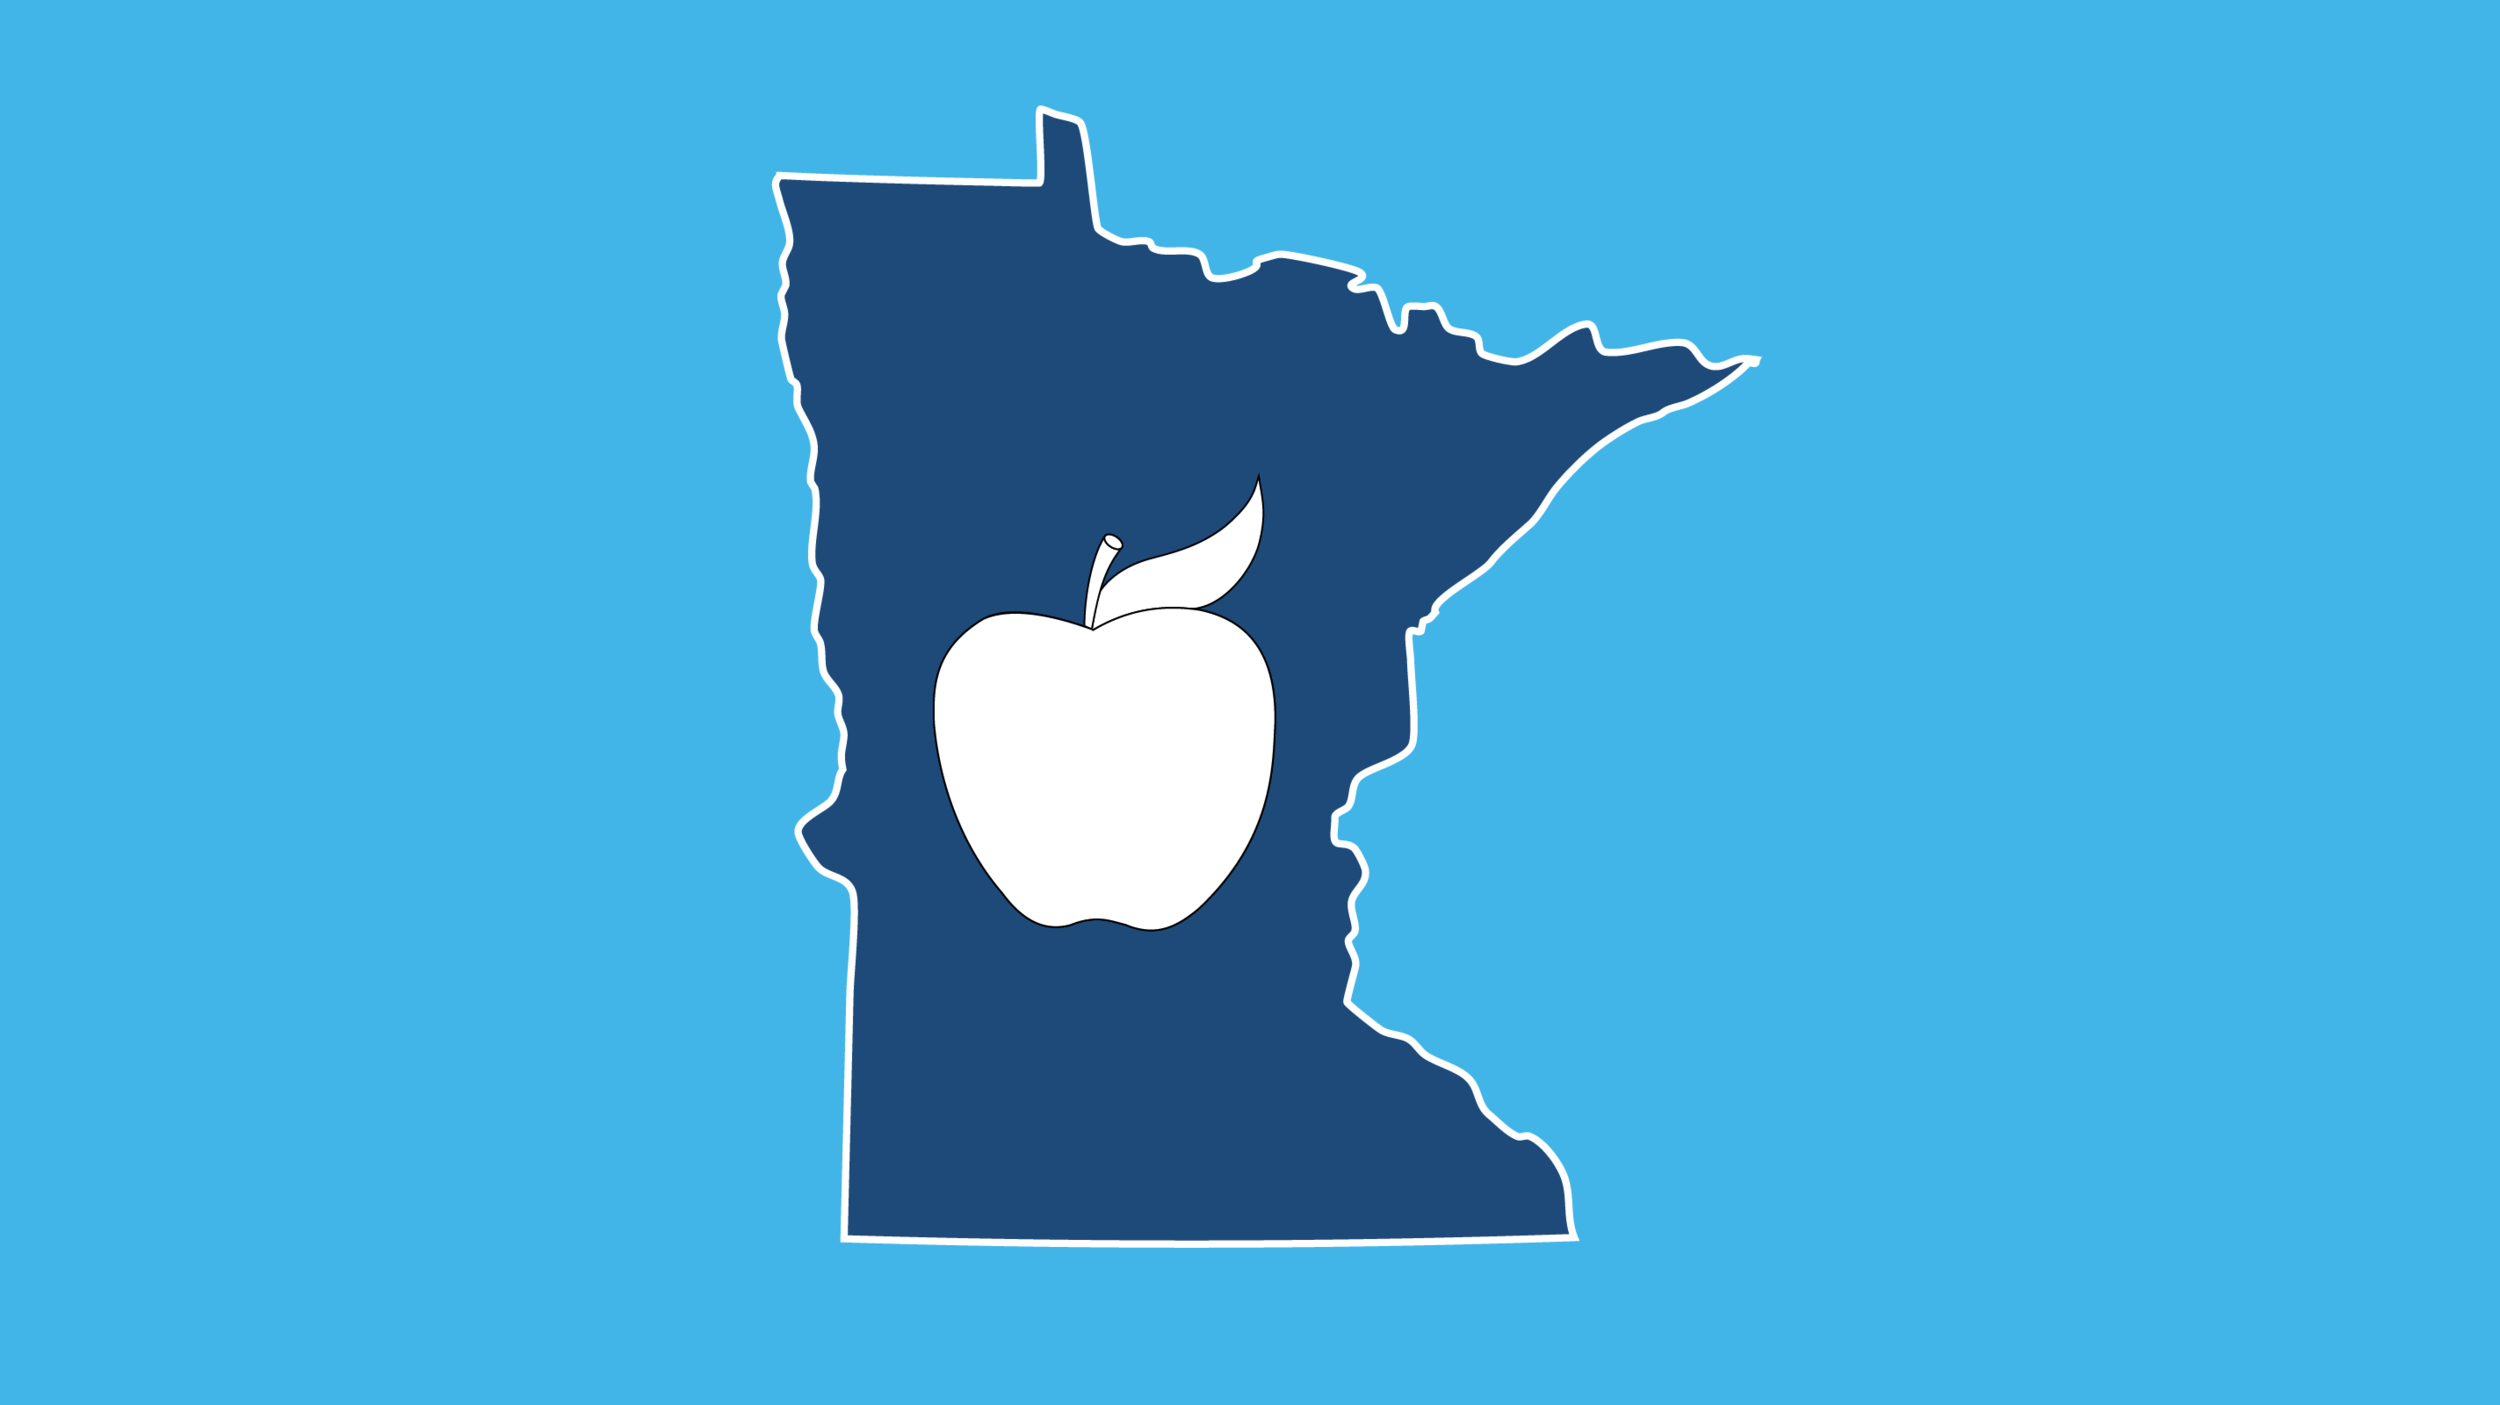 MN apple-01.png